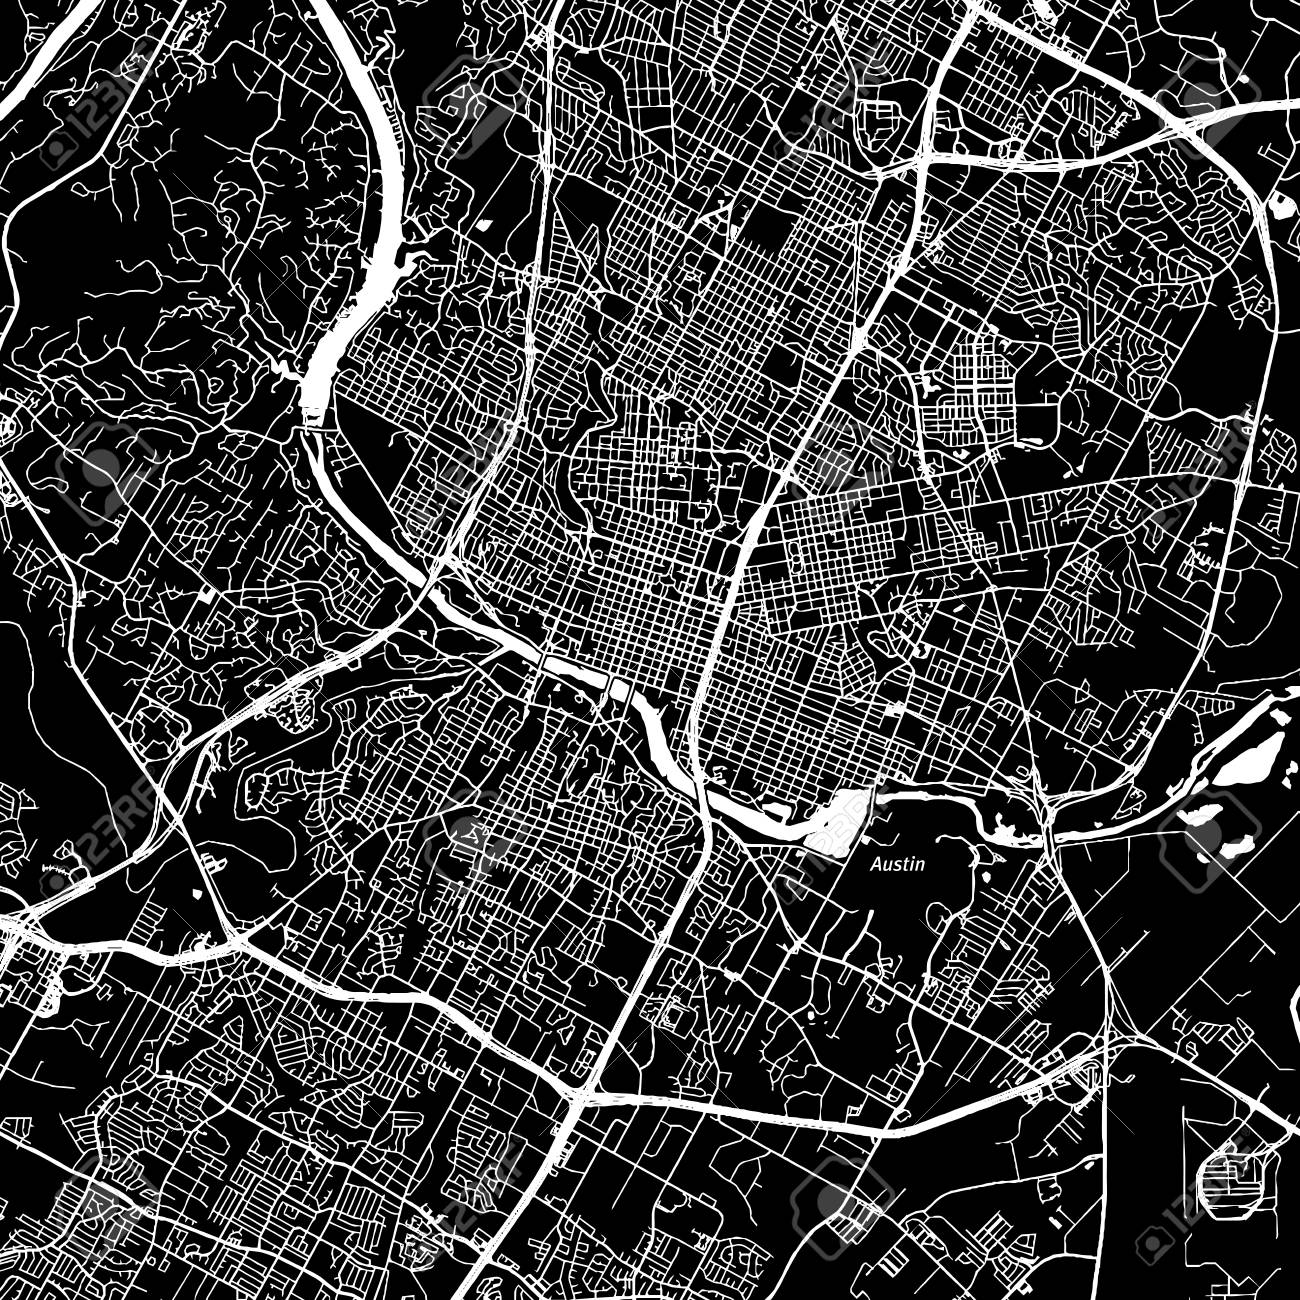 City Map Of Austin Tx on city of ada ok map, city of bowling green ky map, city of santa fe nm map, city of harahan la map, city of los angeles ca map, city of stuart fl map, city of concord nc map, city of grand forks nd map, city of long beach ca map, city of manchester nh map, city of bismarck nd map, city of green bay wi map, city of caldwell id map, city of apache junction az map, city of ann arbor mi map, city of darien ct map, city of battle creek mi map, city of dubois pa map, city street maps austin texas, city of sault ste marie mi map,